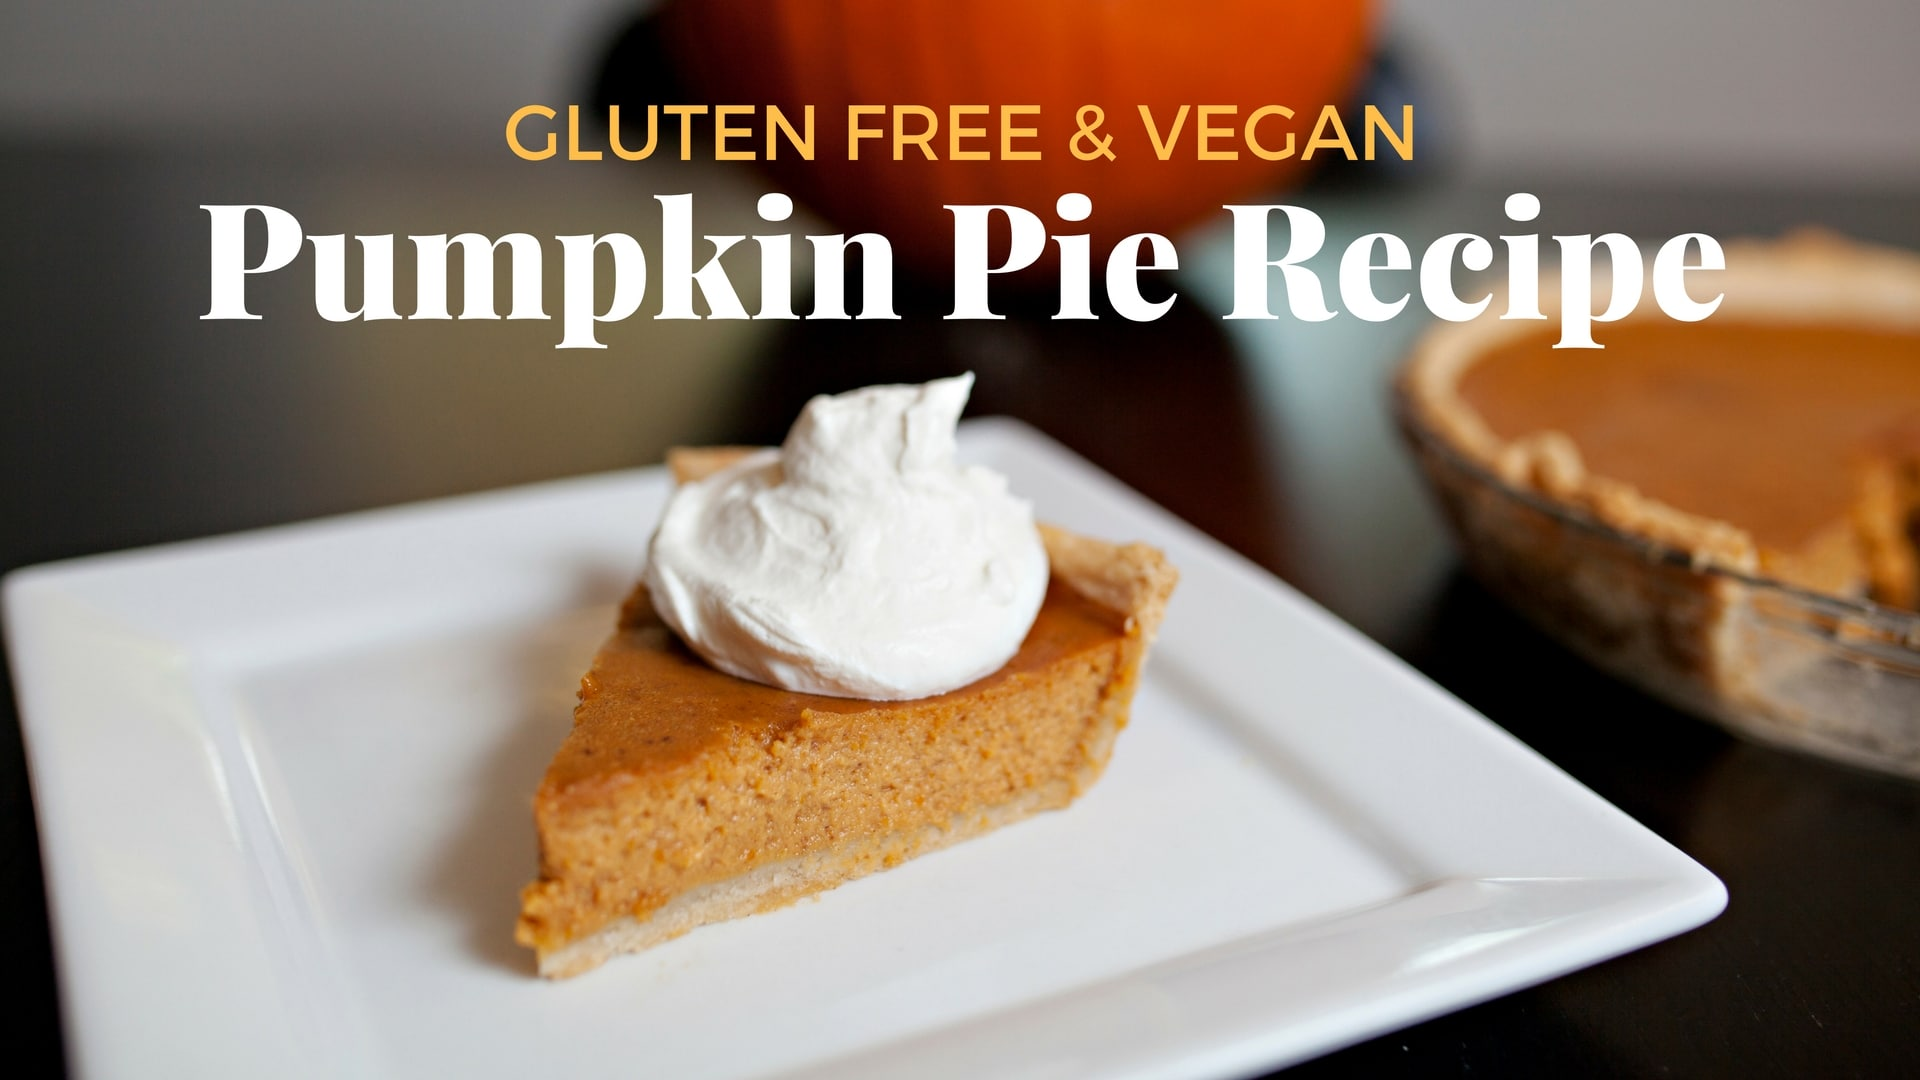 Gluten Free & Vegan Pumpkin Pie Recipe Blog